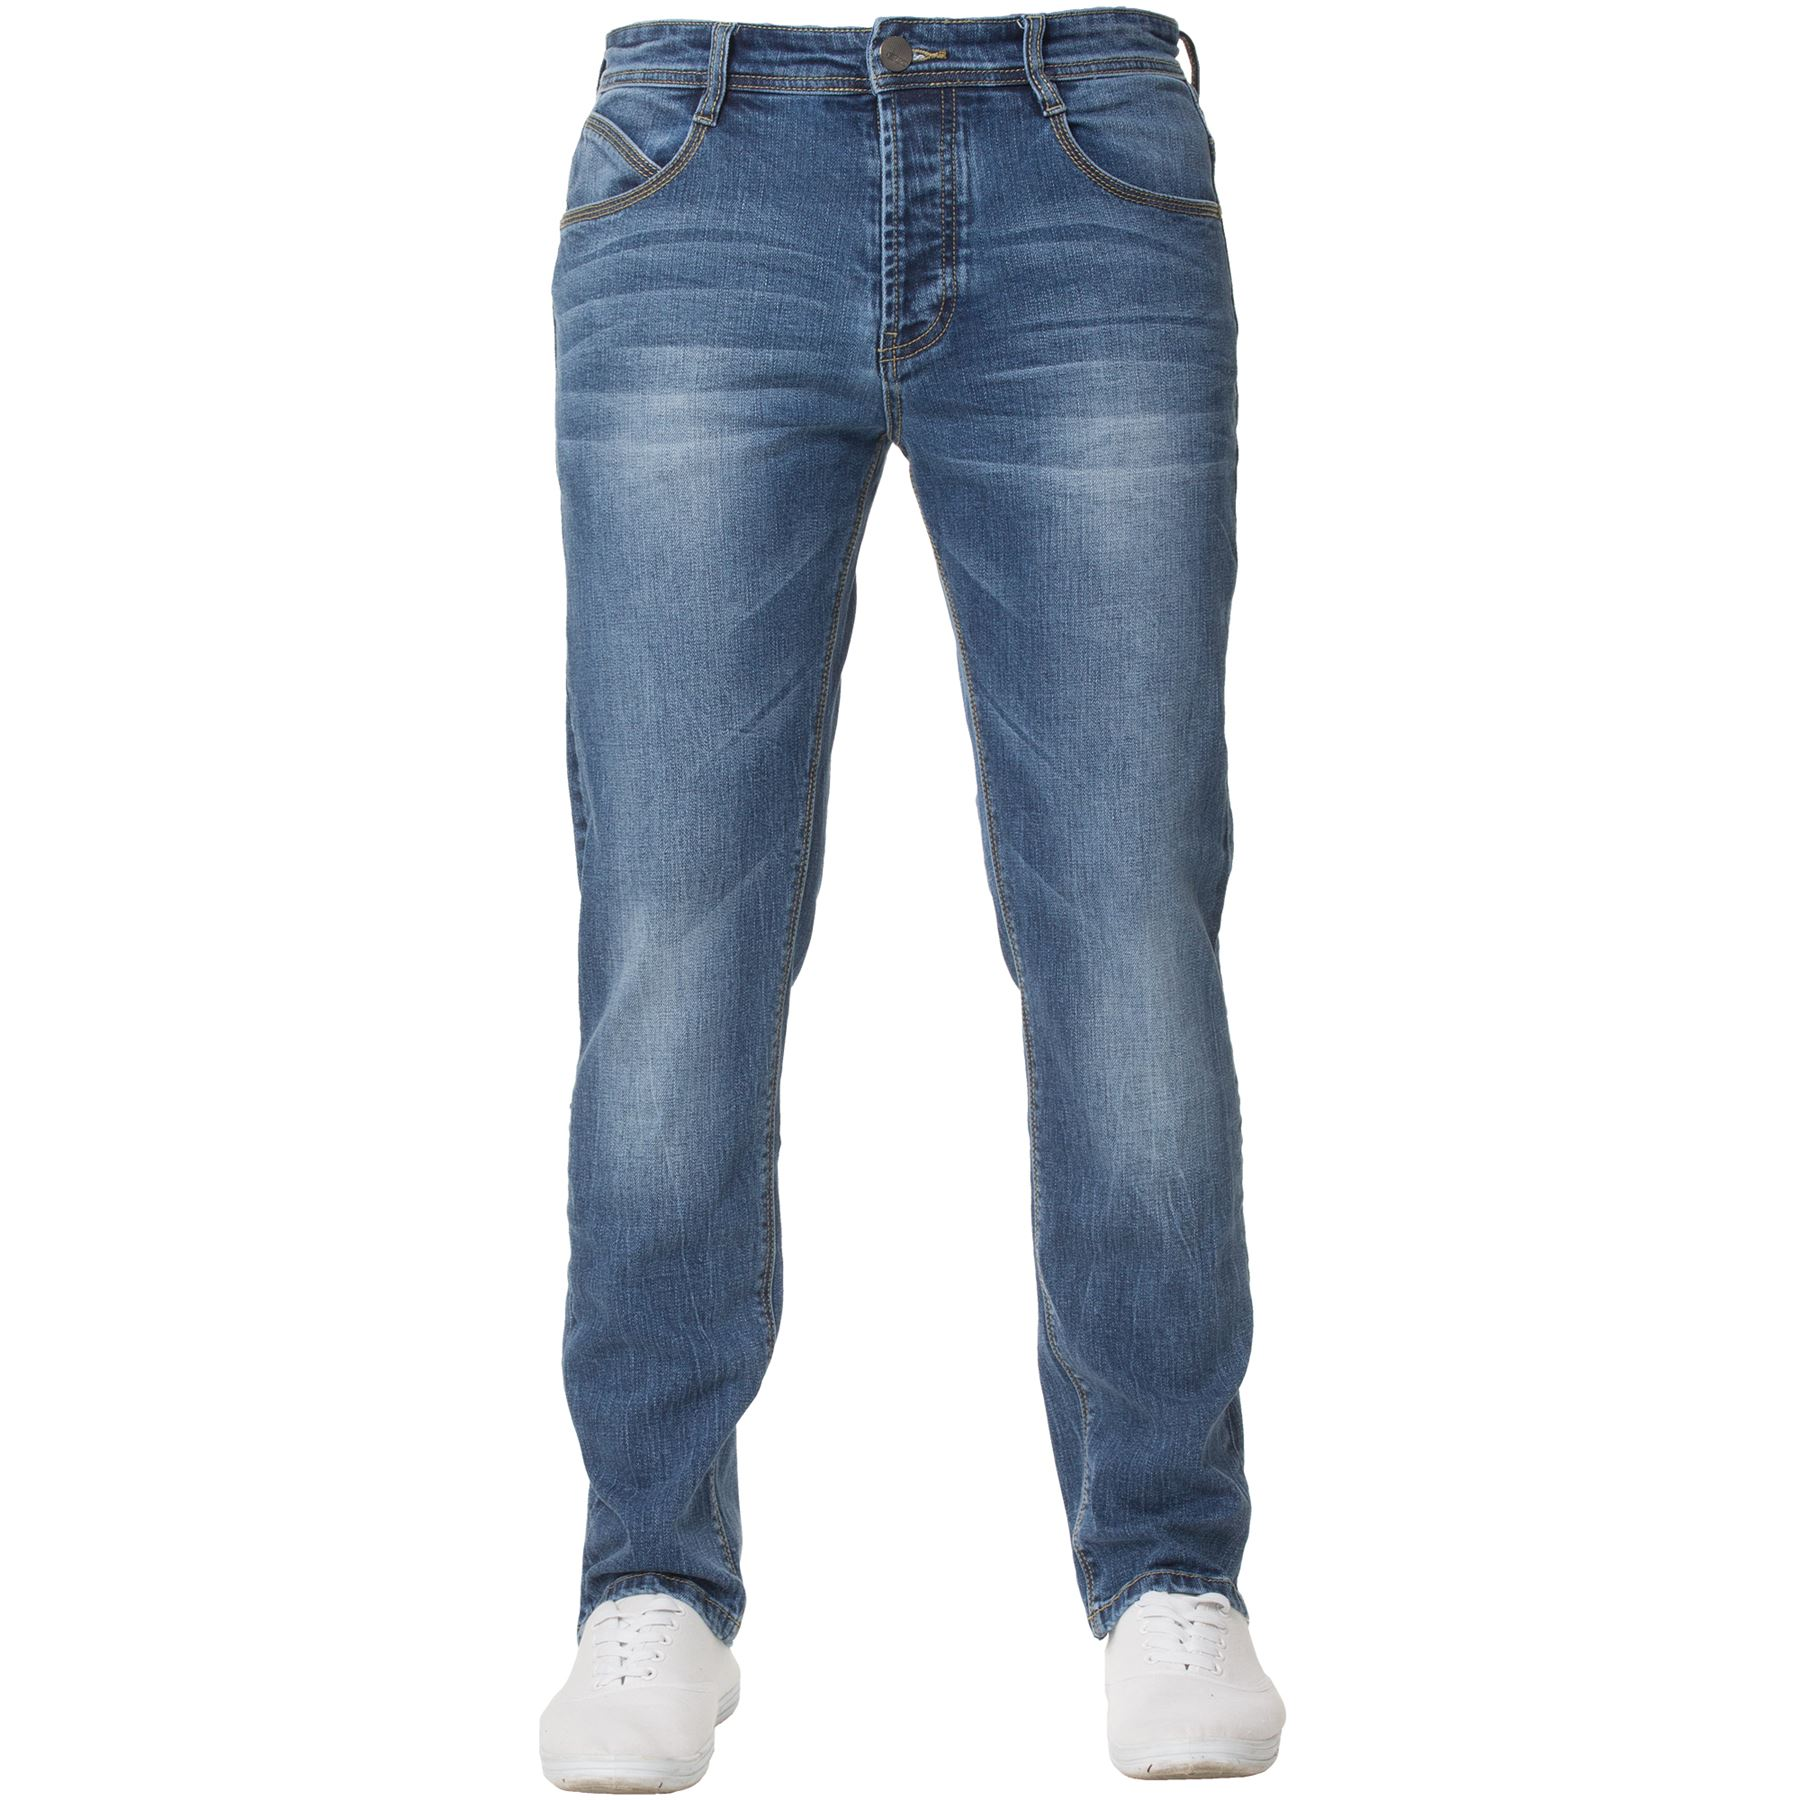 Eto-Designer-Mens-Tapered-Jeans-Slim-Fit-Stretch-Denim-Trouser-Pants-All-Waists thumbnail 5